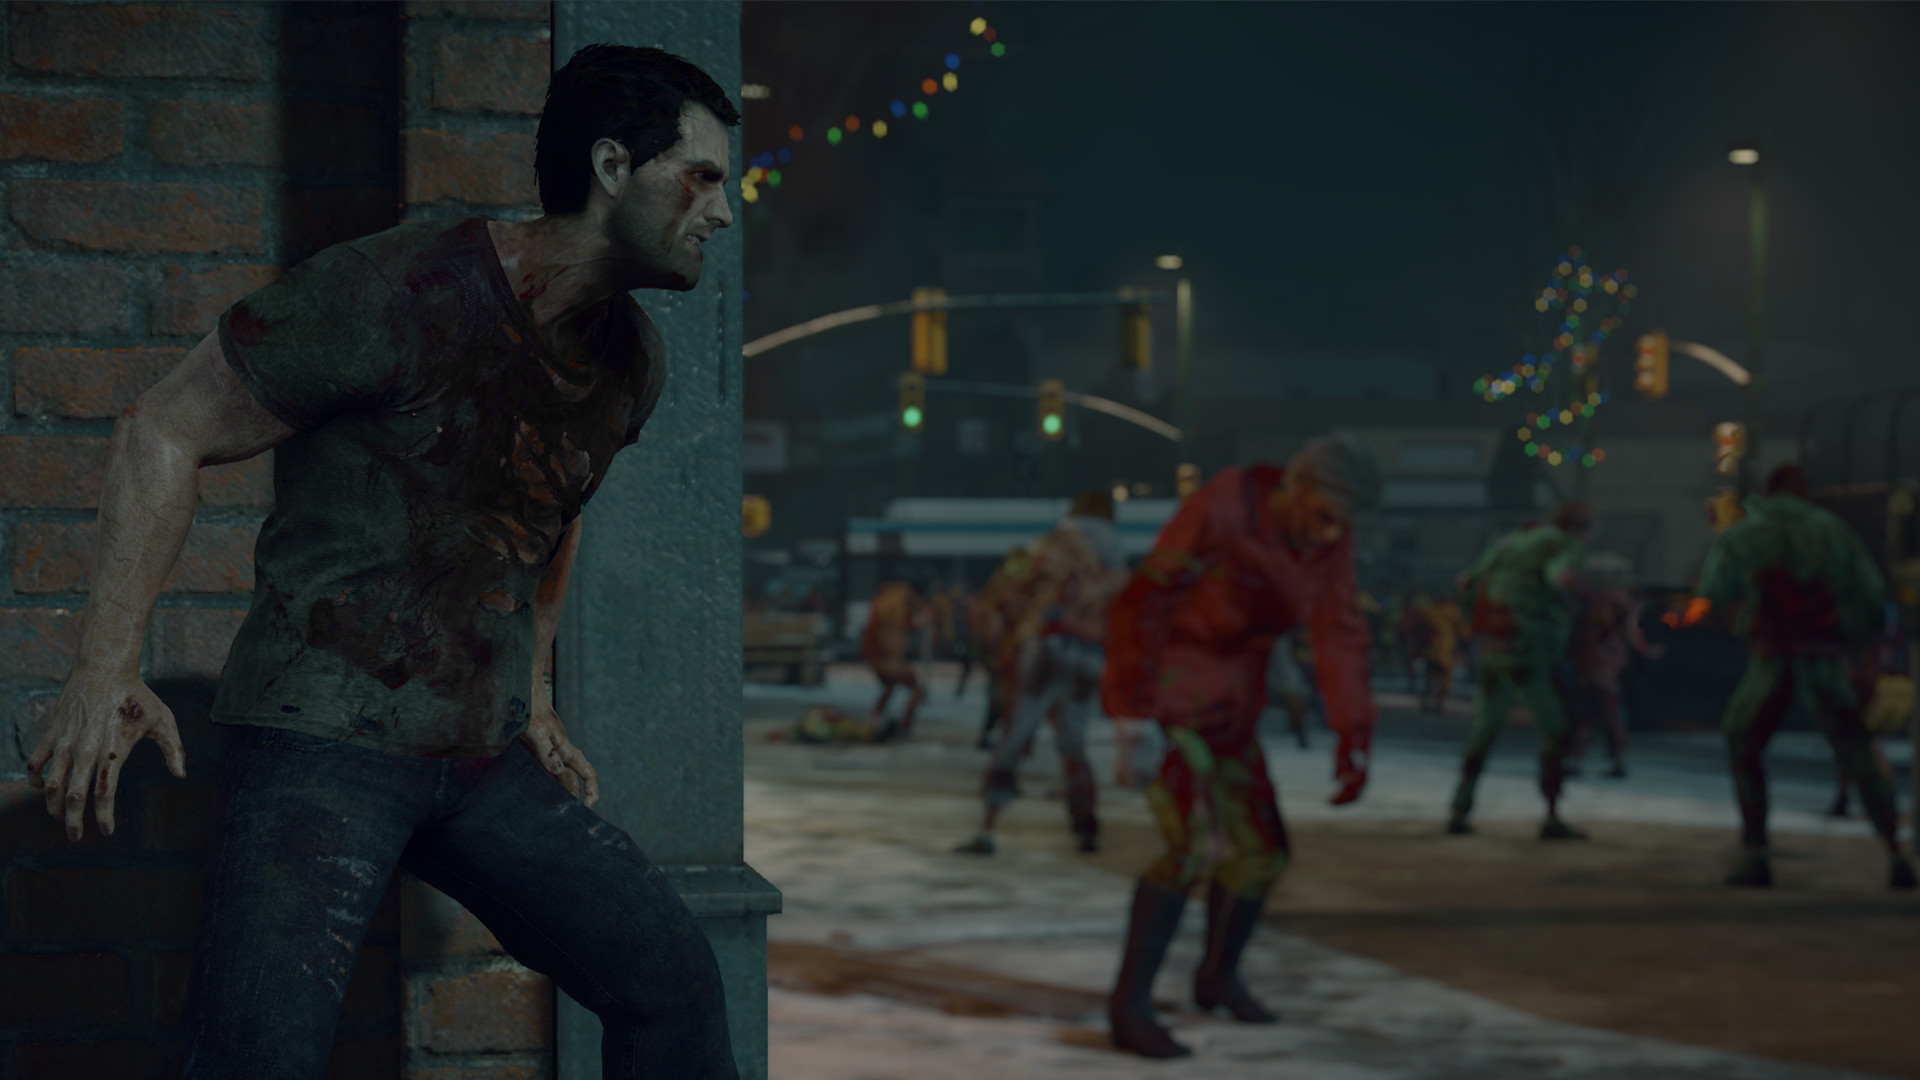 Dead Rising 4 Wallpaper: Top 10 Best Free Xbox One Backgrounds From 2017